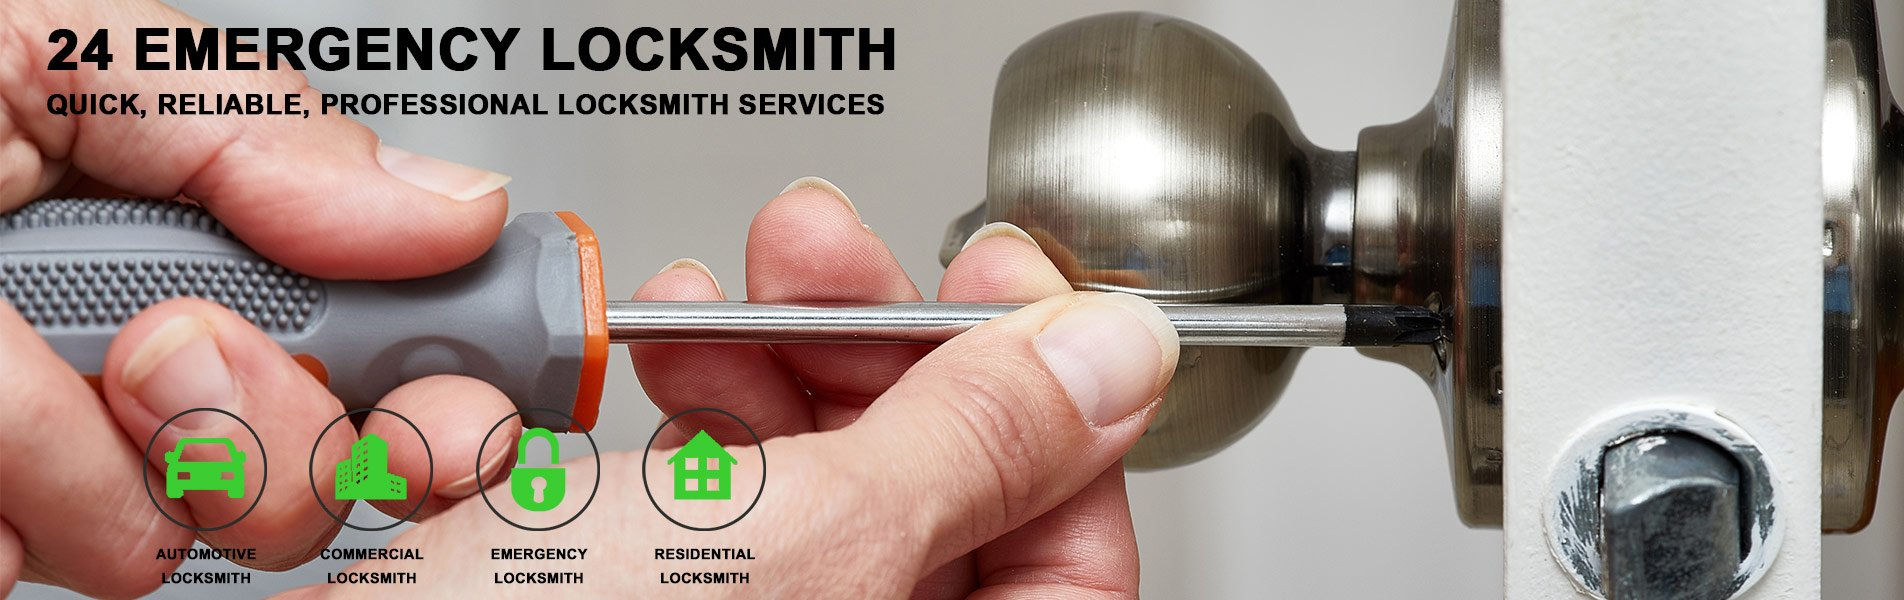 Lock Locksmith Services Astoria, NY 718-489-9786